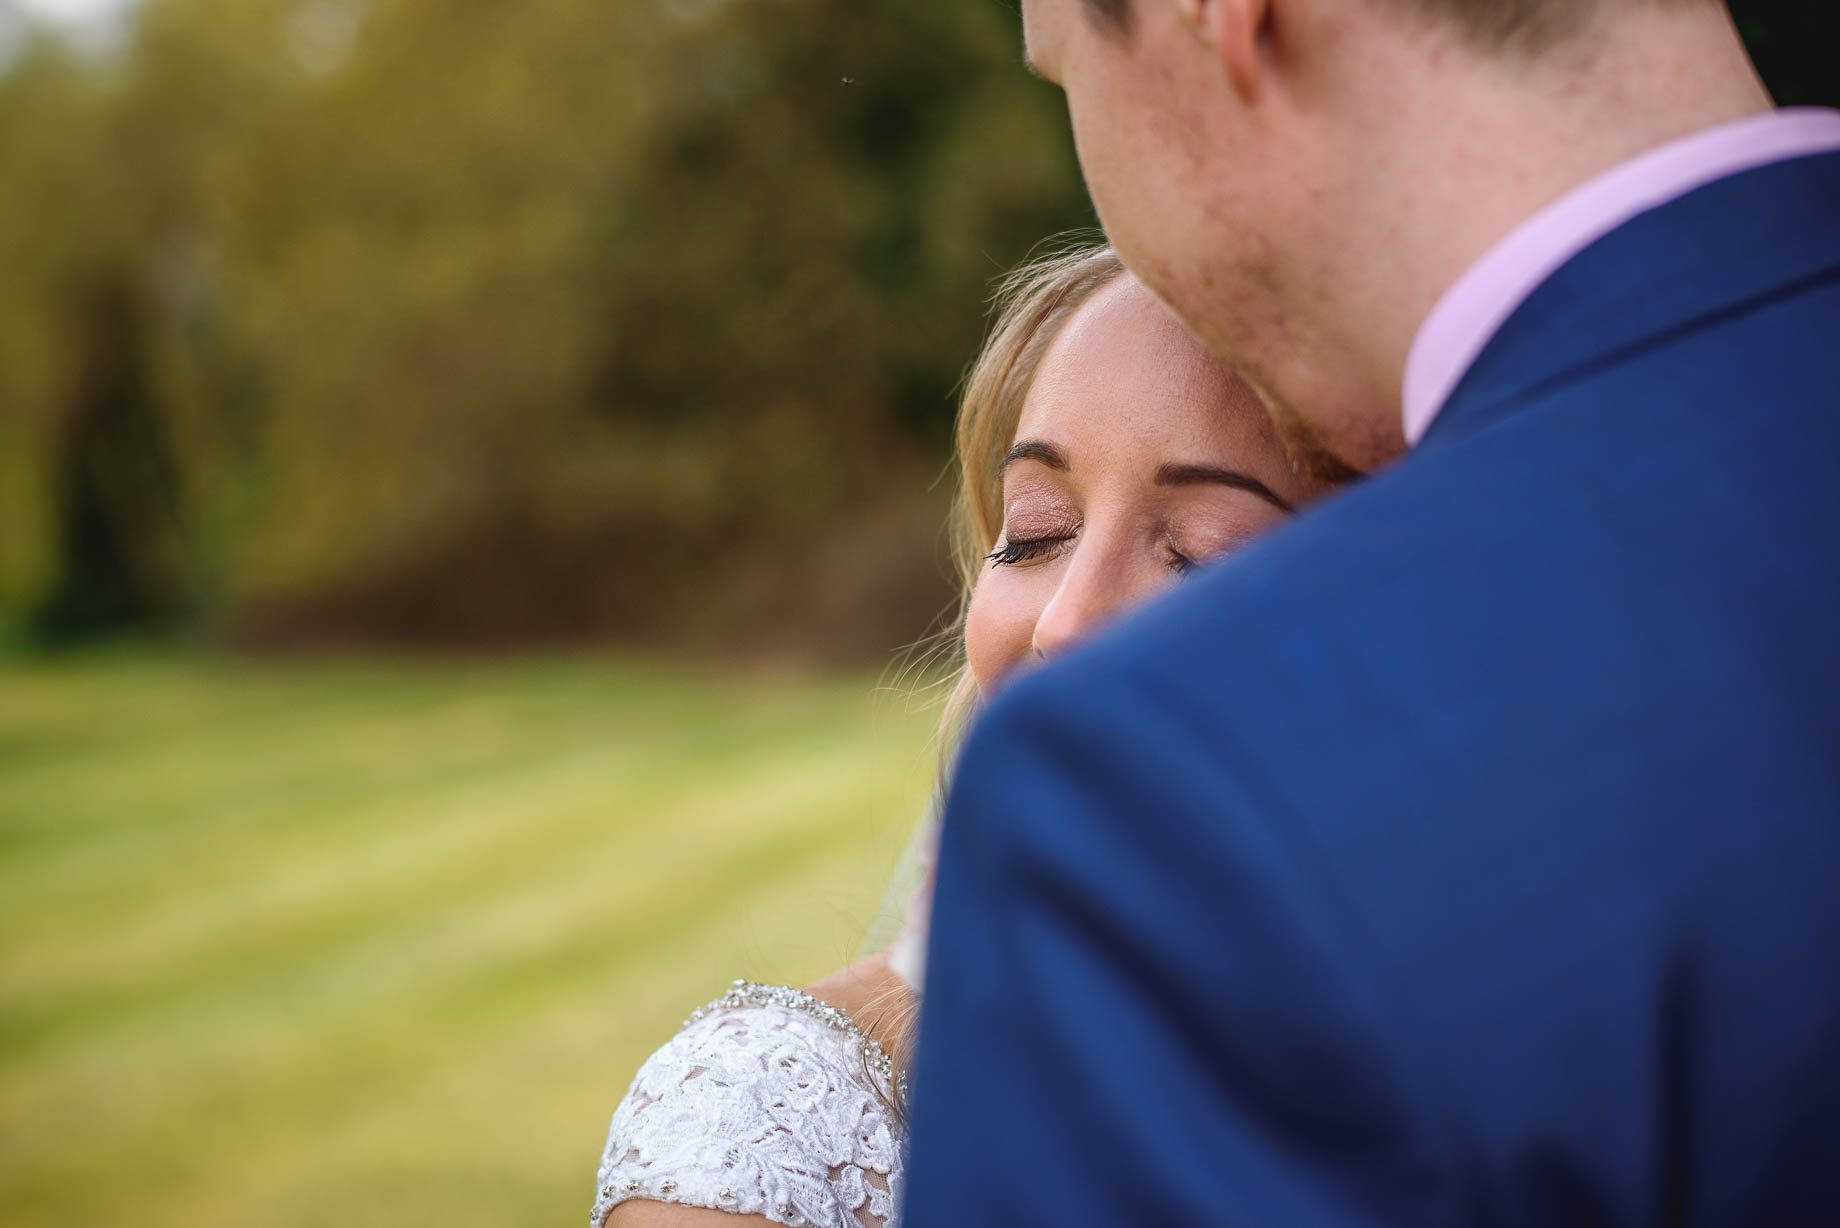 Hampshire wedding photography by Guy Collier - Emily and Tom (87 of 164)